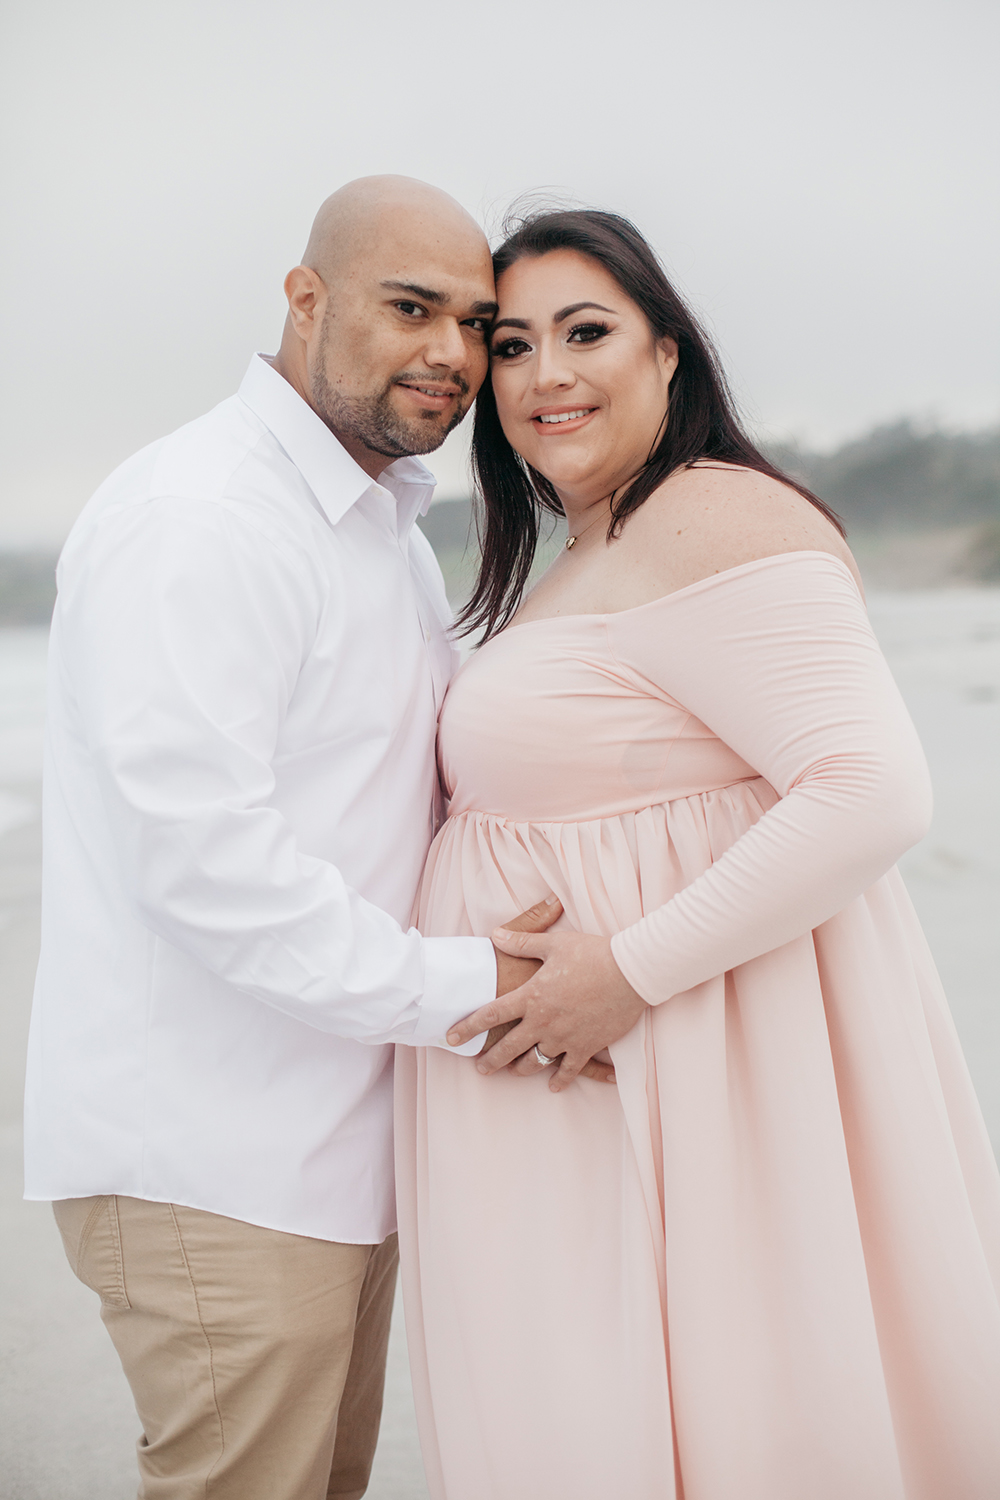 Husband and wife at the beach during their maternity photo session in Carmel-by-the-sea.